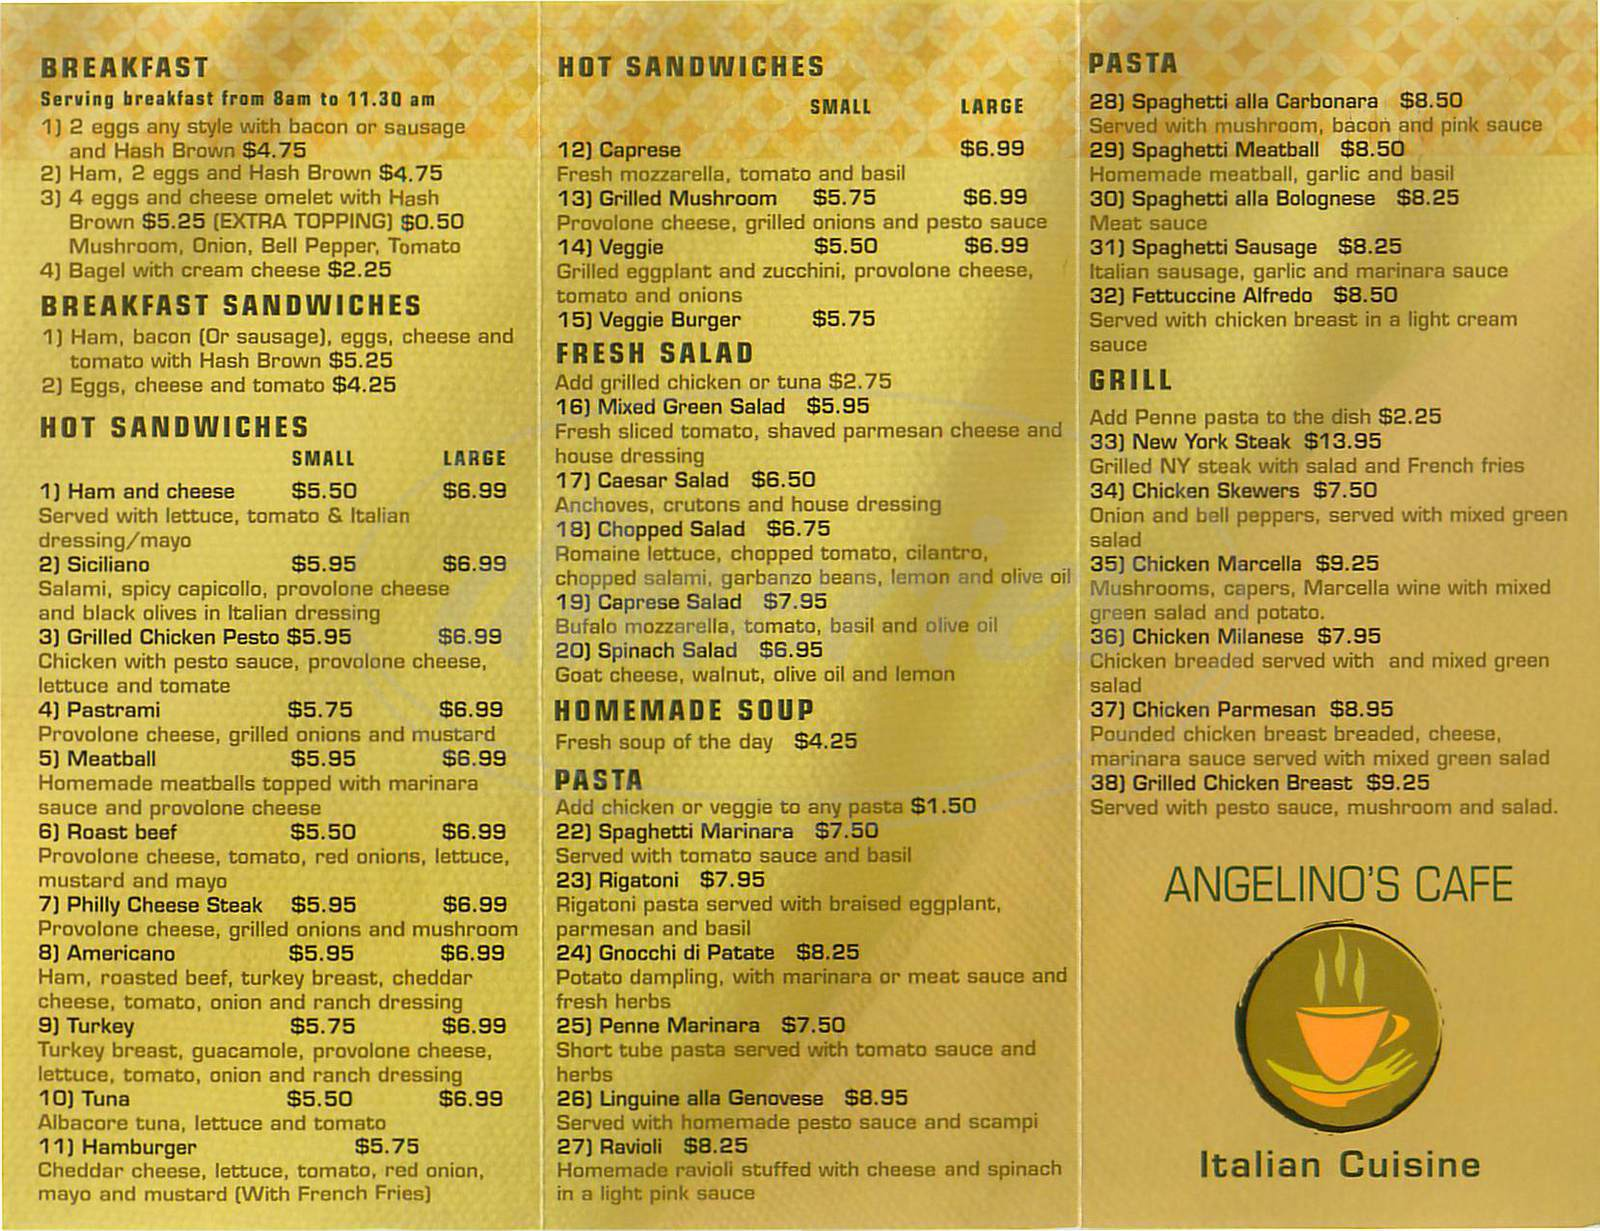 menu for Angelino's Café